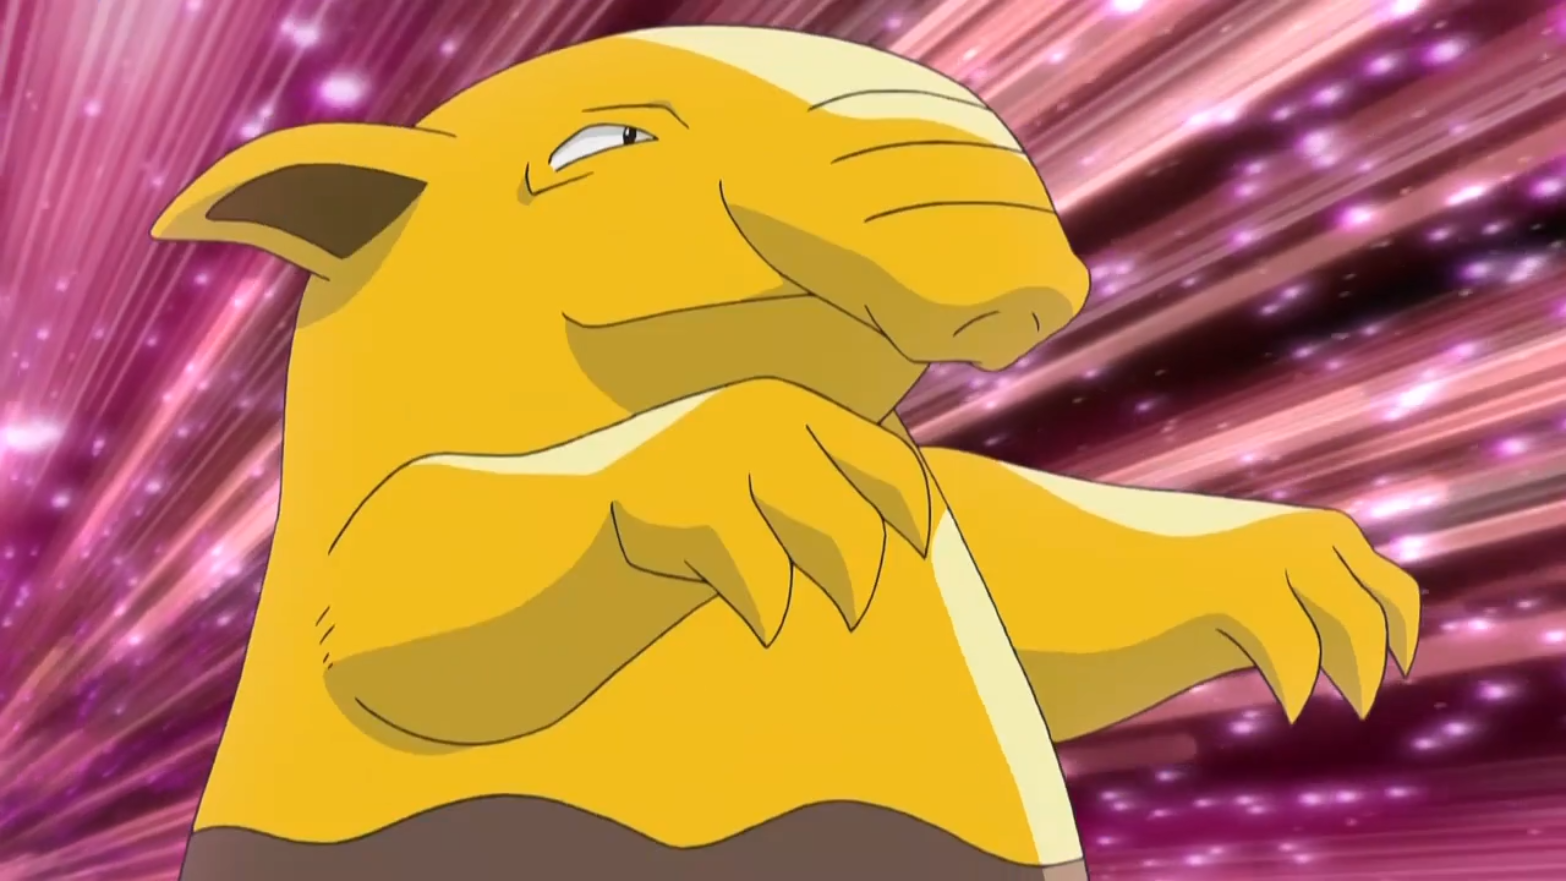 Azure's Drowzee participated in the fake Pokémon Hustle event that Team Rocket put on. After stealing the Poké Balls, Drowzee was sent out to protect Azure from Meowth who attempted to recover the 'stolen' Pokémon. Zangoose's X-Scissor quickly defeated Meowth but stalled Crimson and Azure long enough for Officer Jenny and Ash to intercept them. Officer Jenny Growlithe was easily able to defeat Azure's Drowzee.